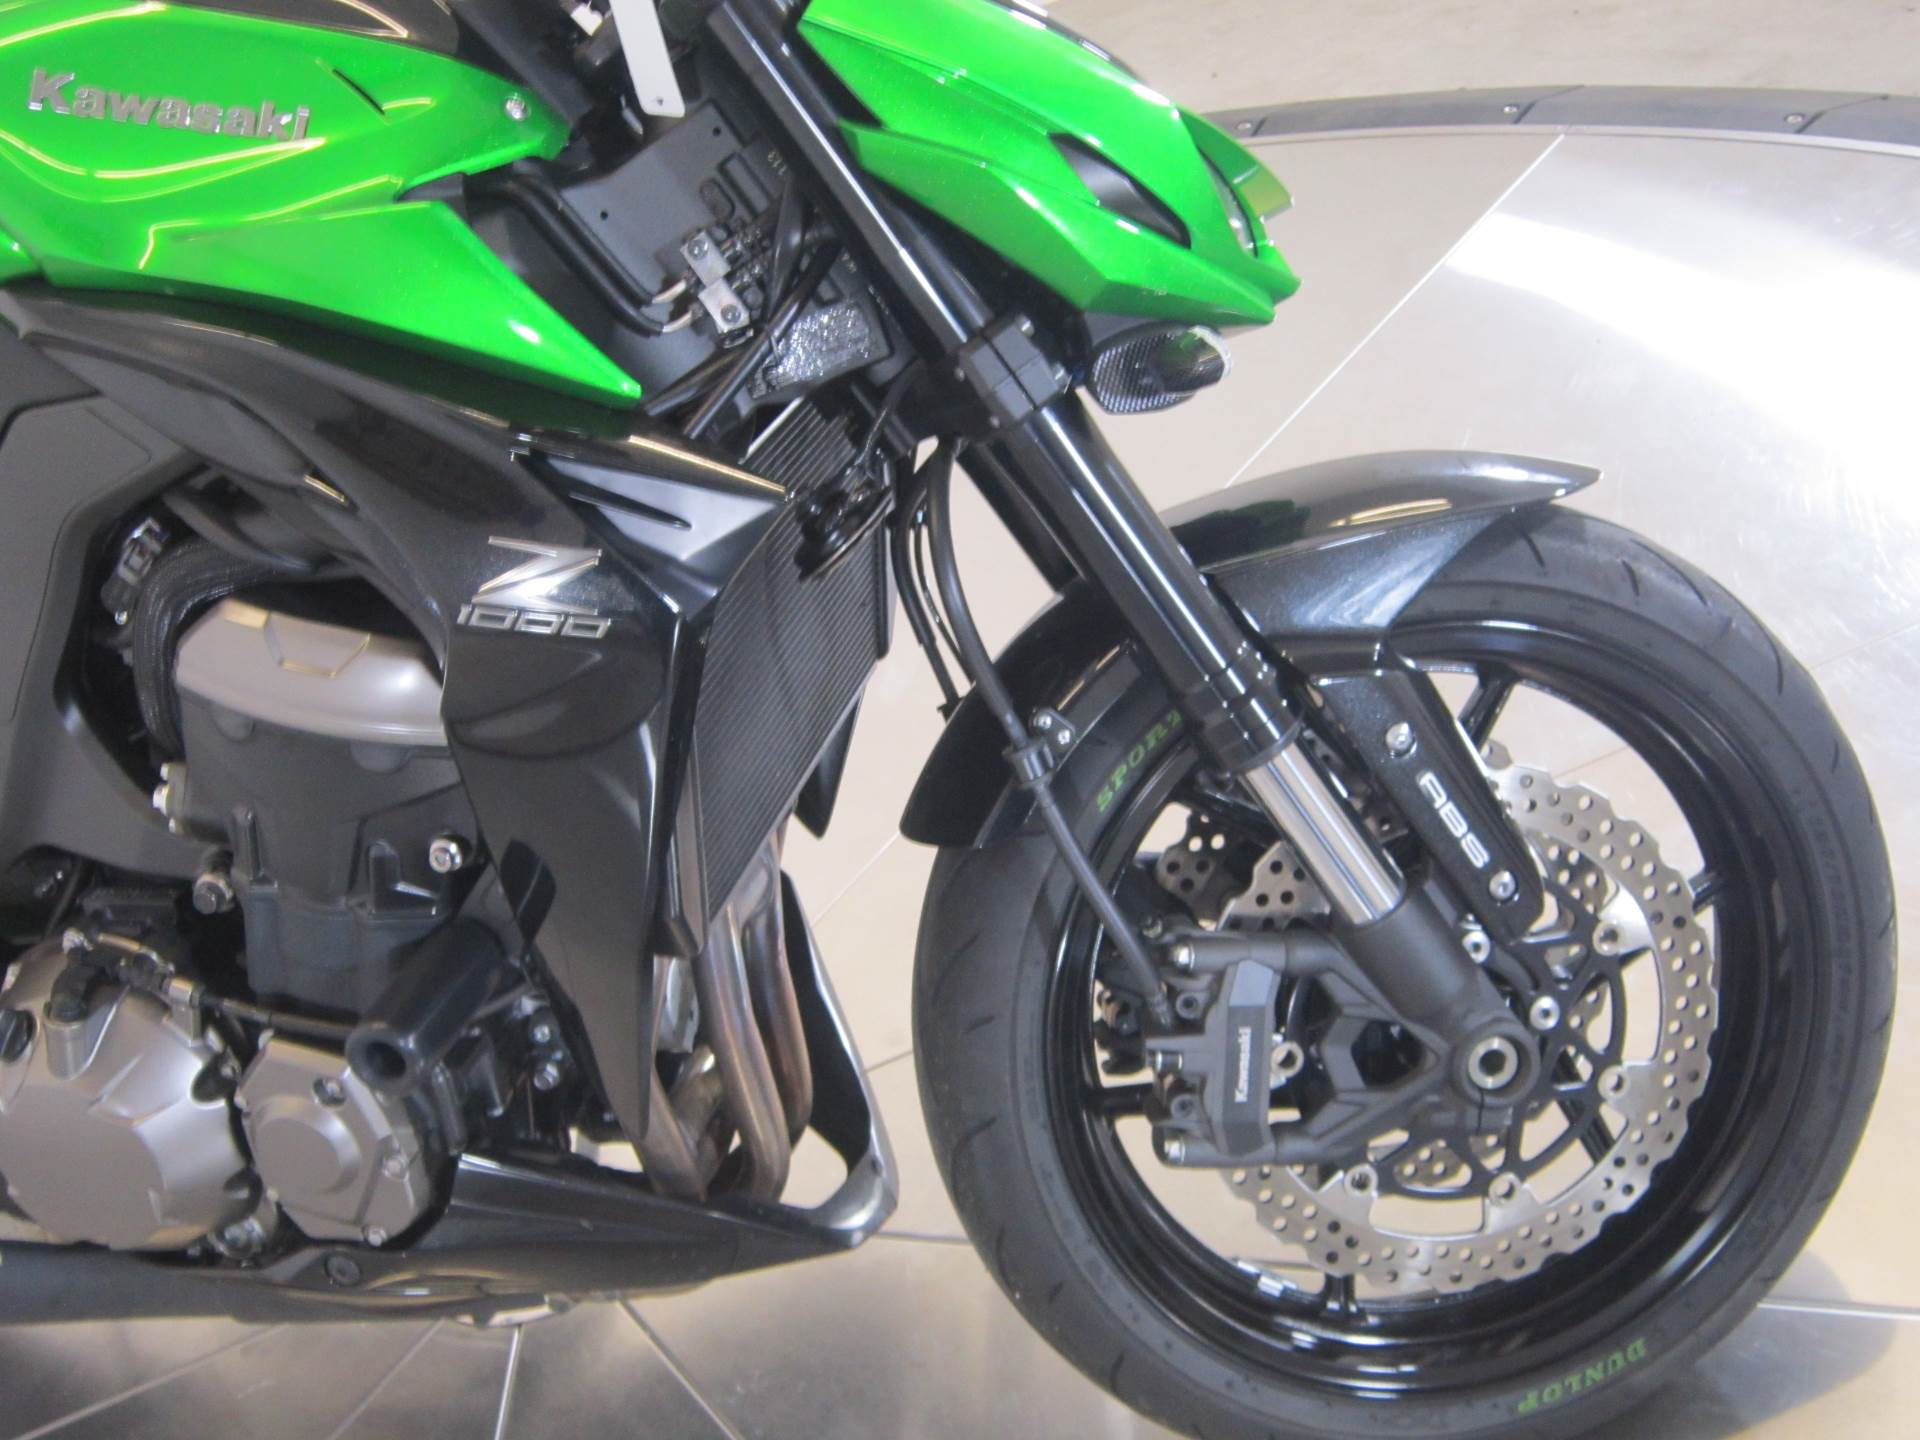 2015 Kawasaki Z1000 ABS in Greenwood Village, Colorado